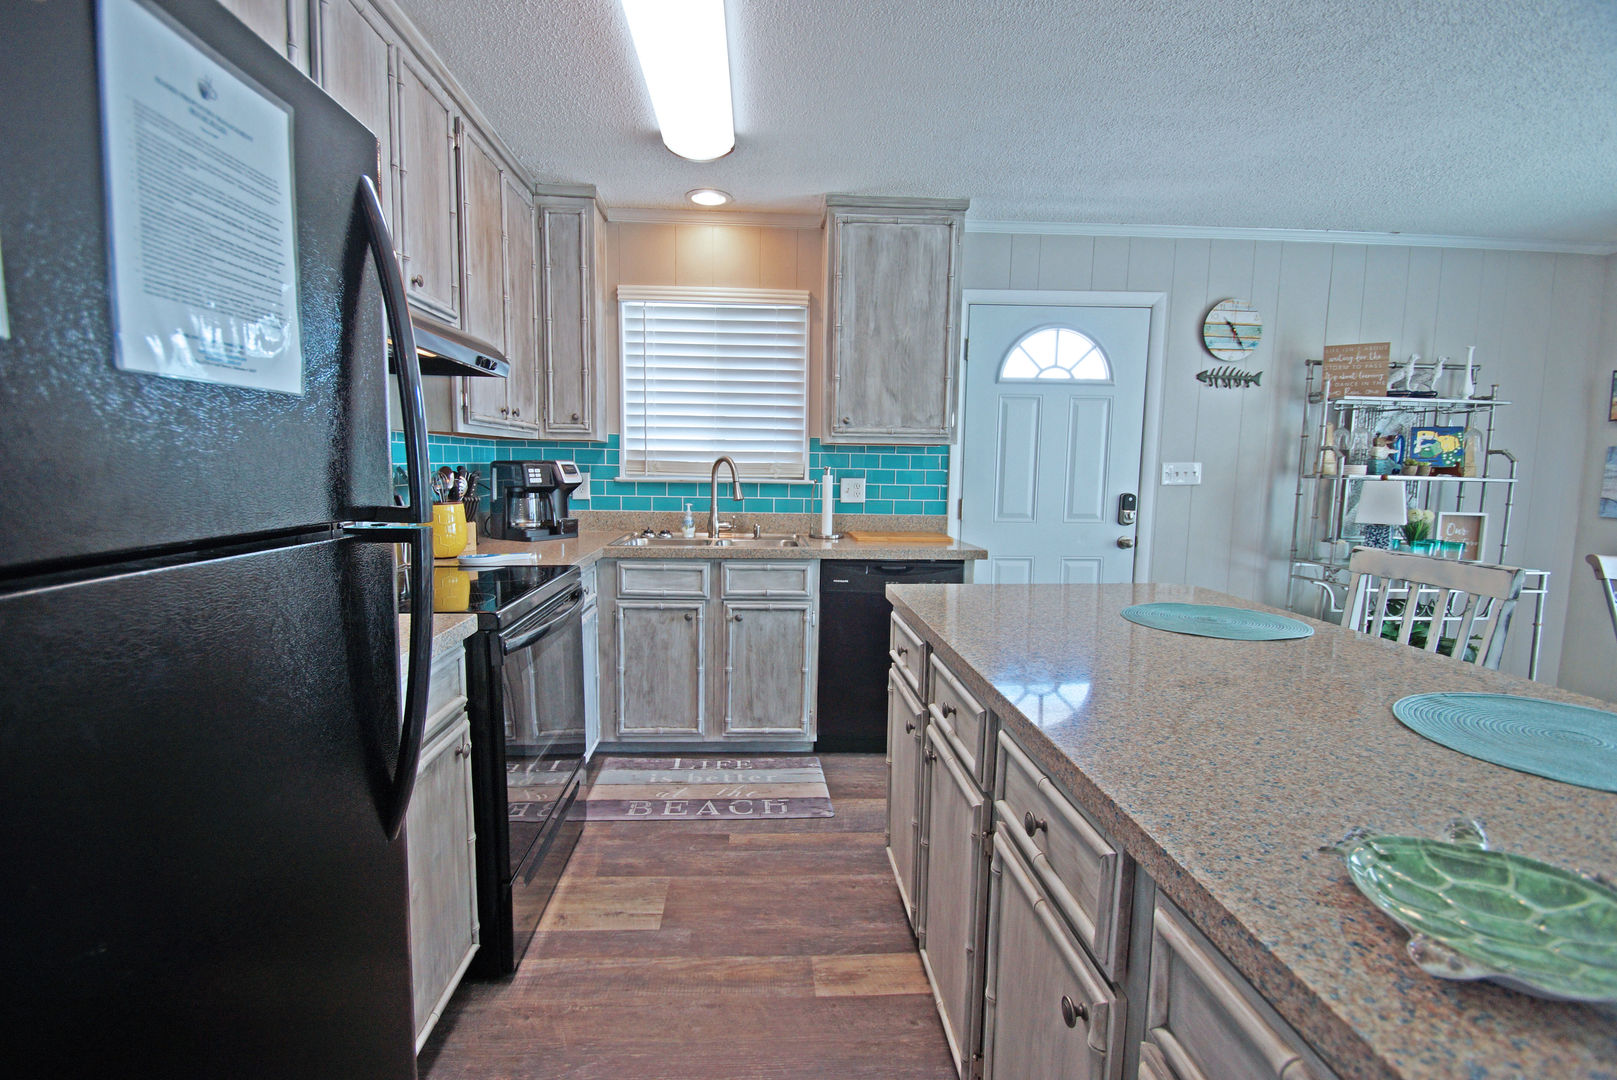 Kitchen with Counter, Refrigerator, Coffee Maker, Bookcase, and Chairs.